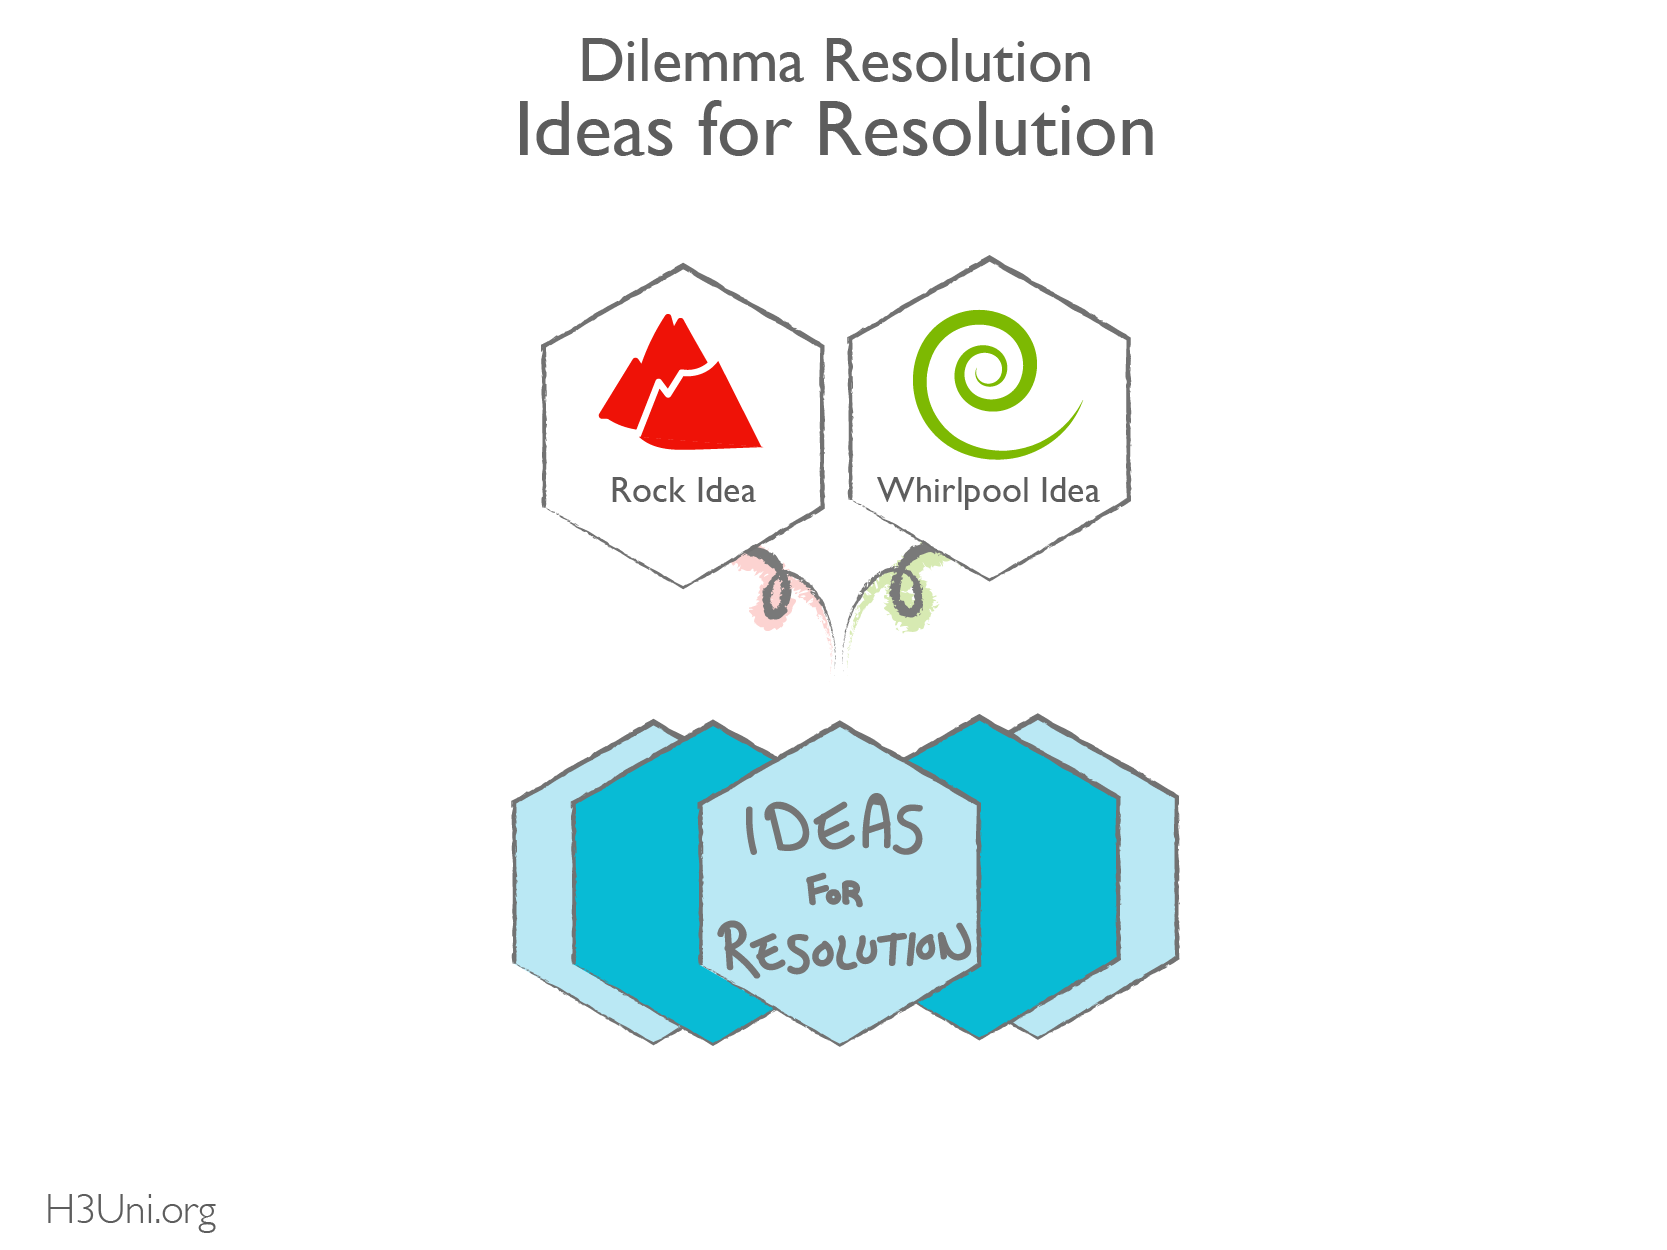 H3U - RL - Dilemma Resolution Mapping Guide_Ideas for Resolution